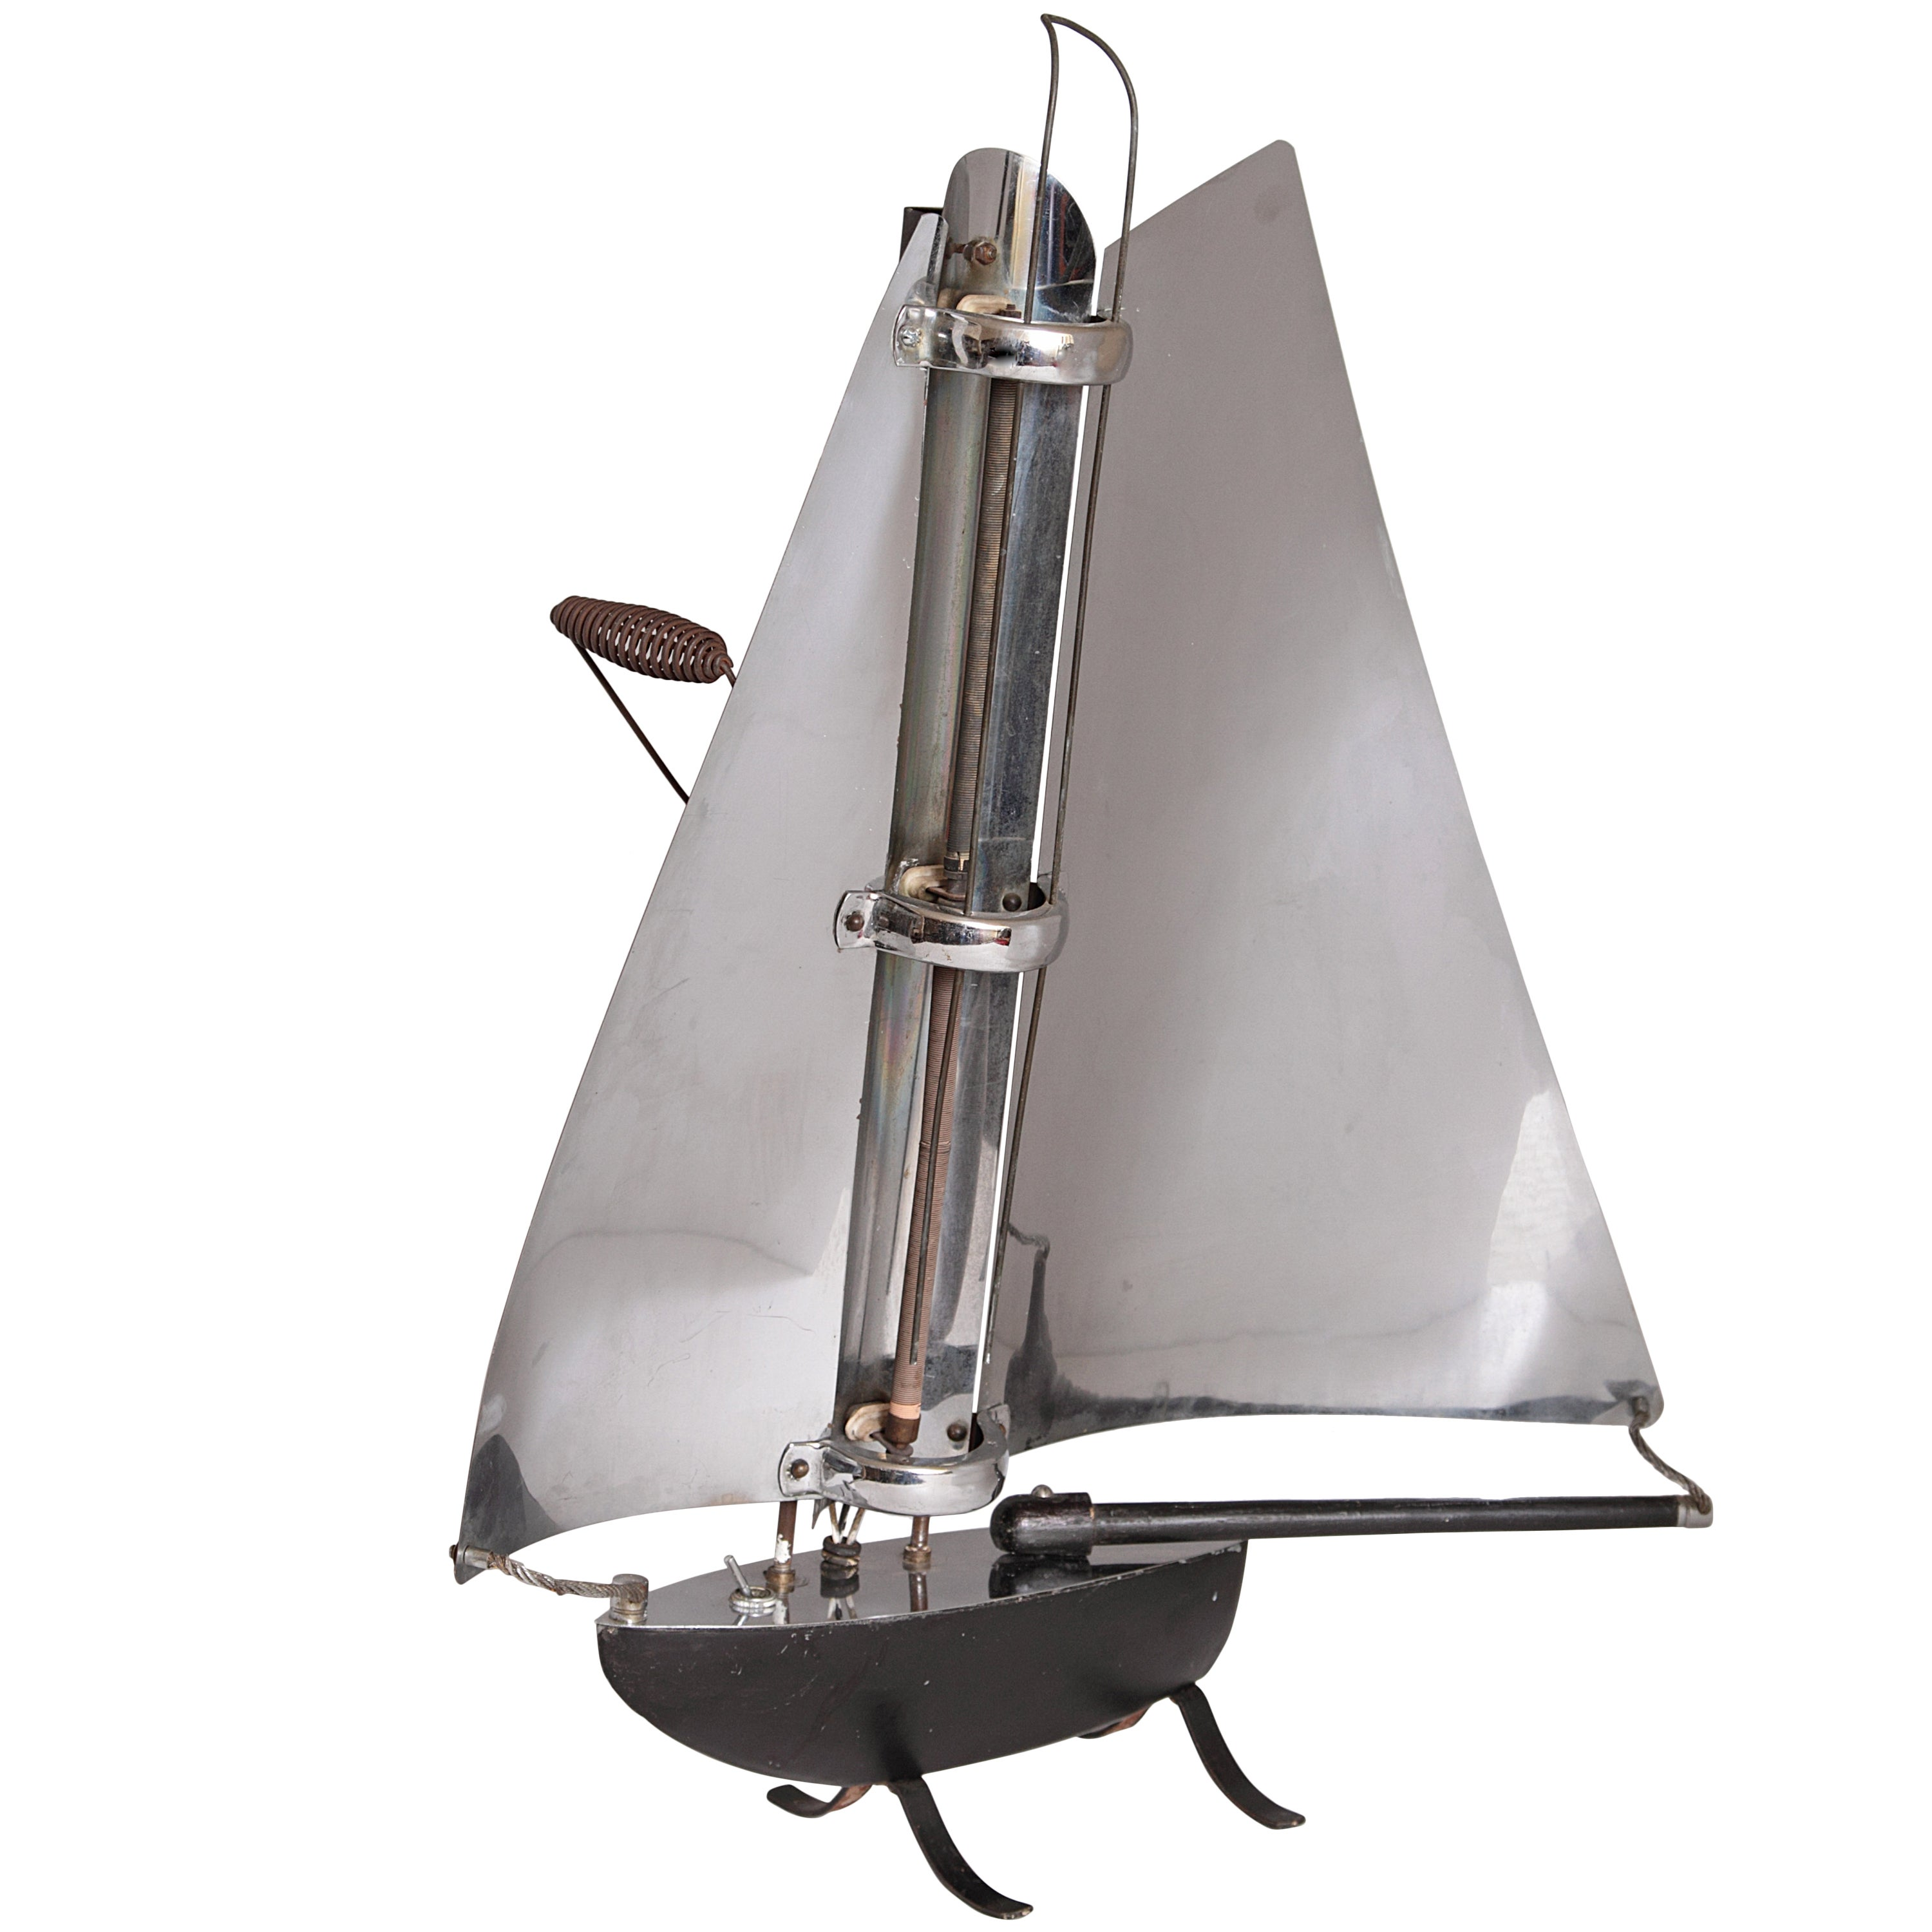 Sailboat Radiant Heater by Bunting